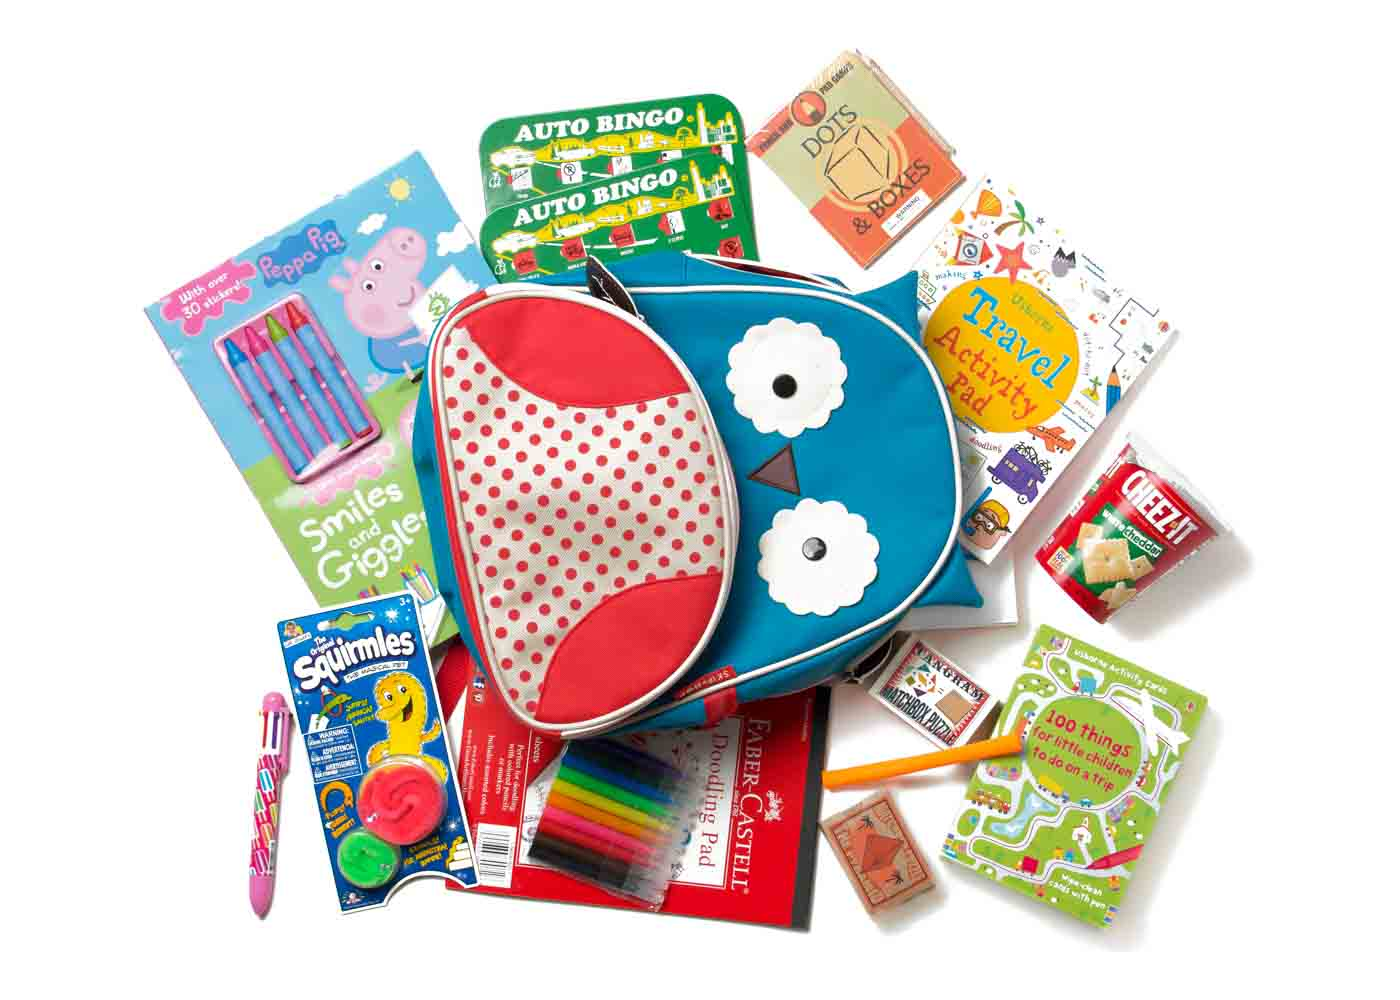 Filling Skip Hop Zoo's Otis Owl backpack with travel-friendly activities for children.